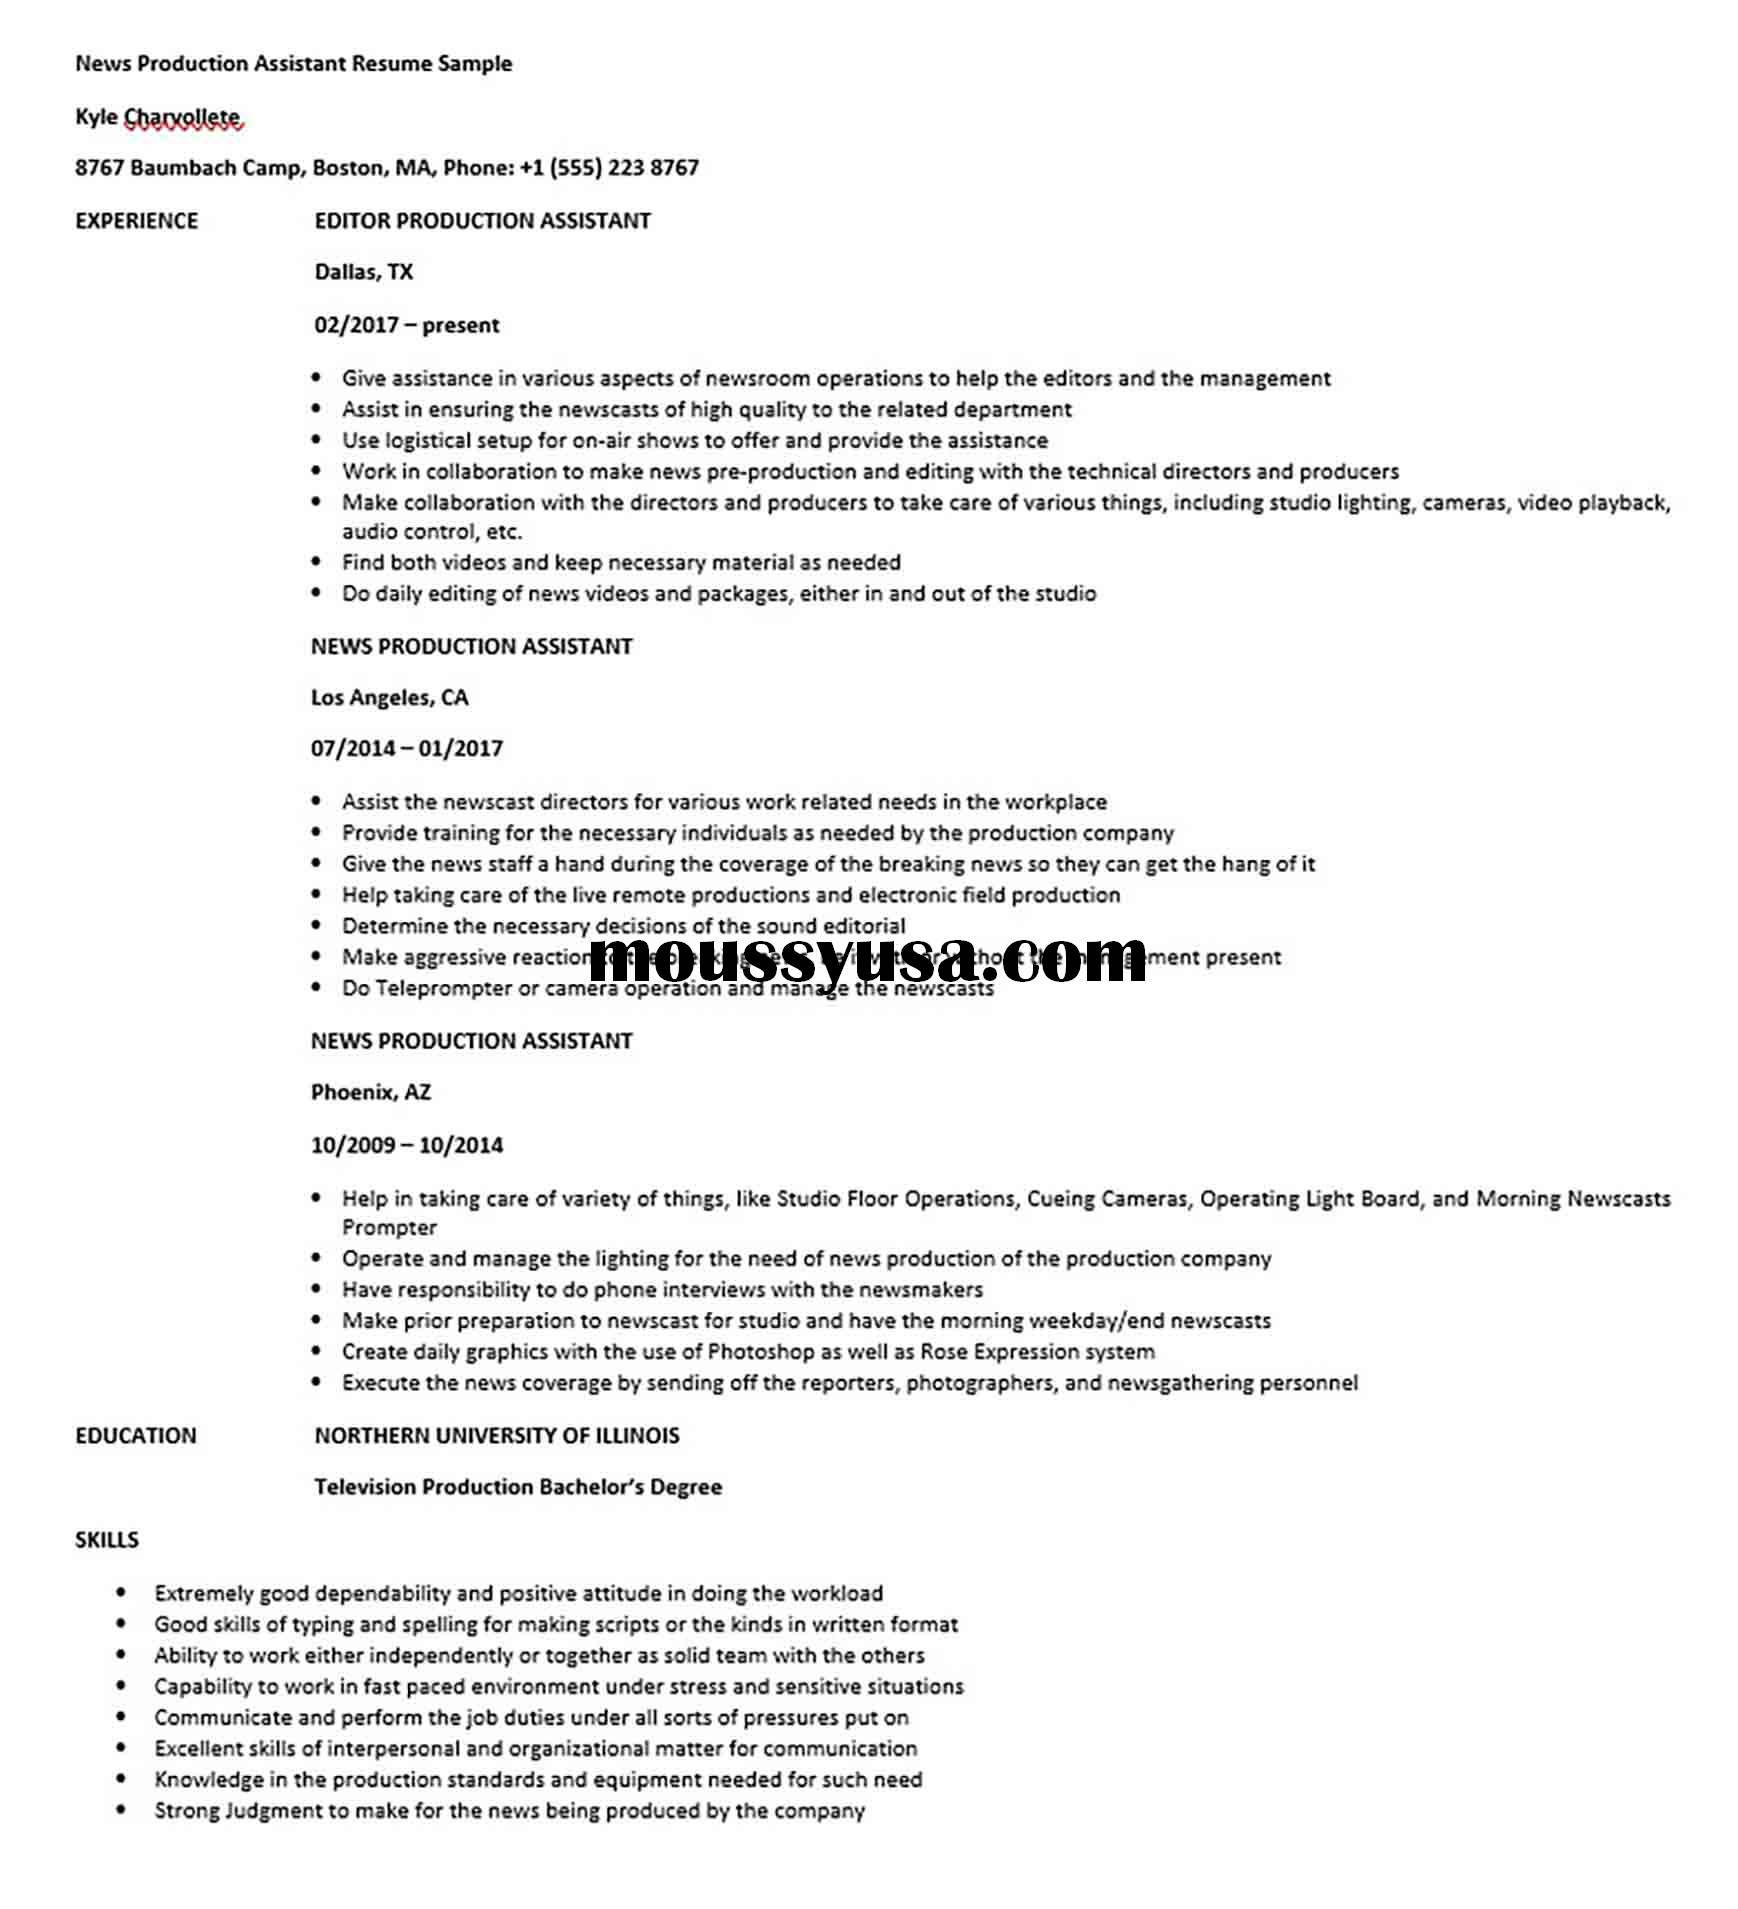 News Production Assistant Resume Sample